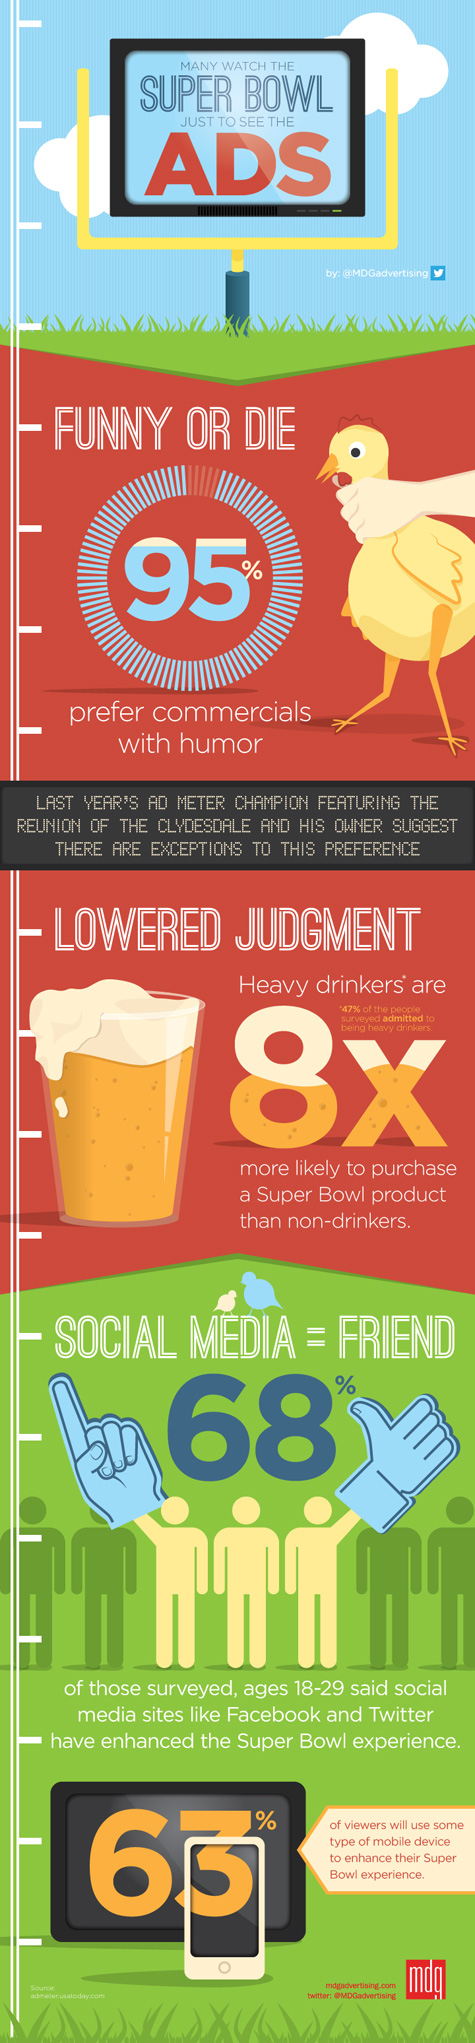 Super Bowl Ads Score More Fans Than the Game [Infographic]